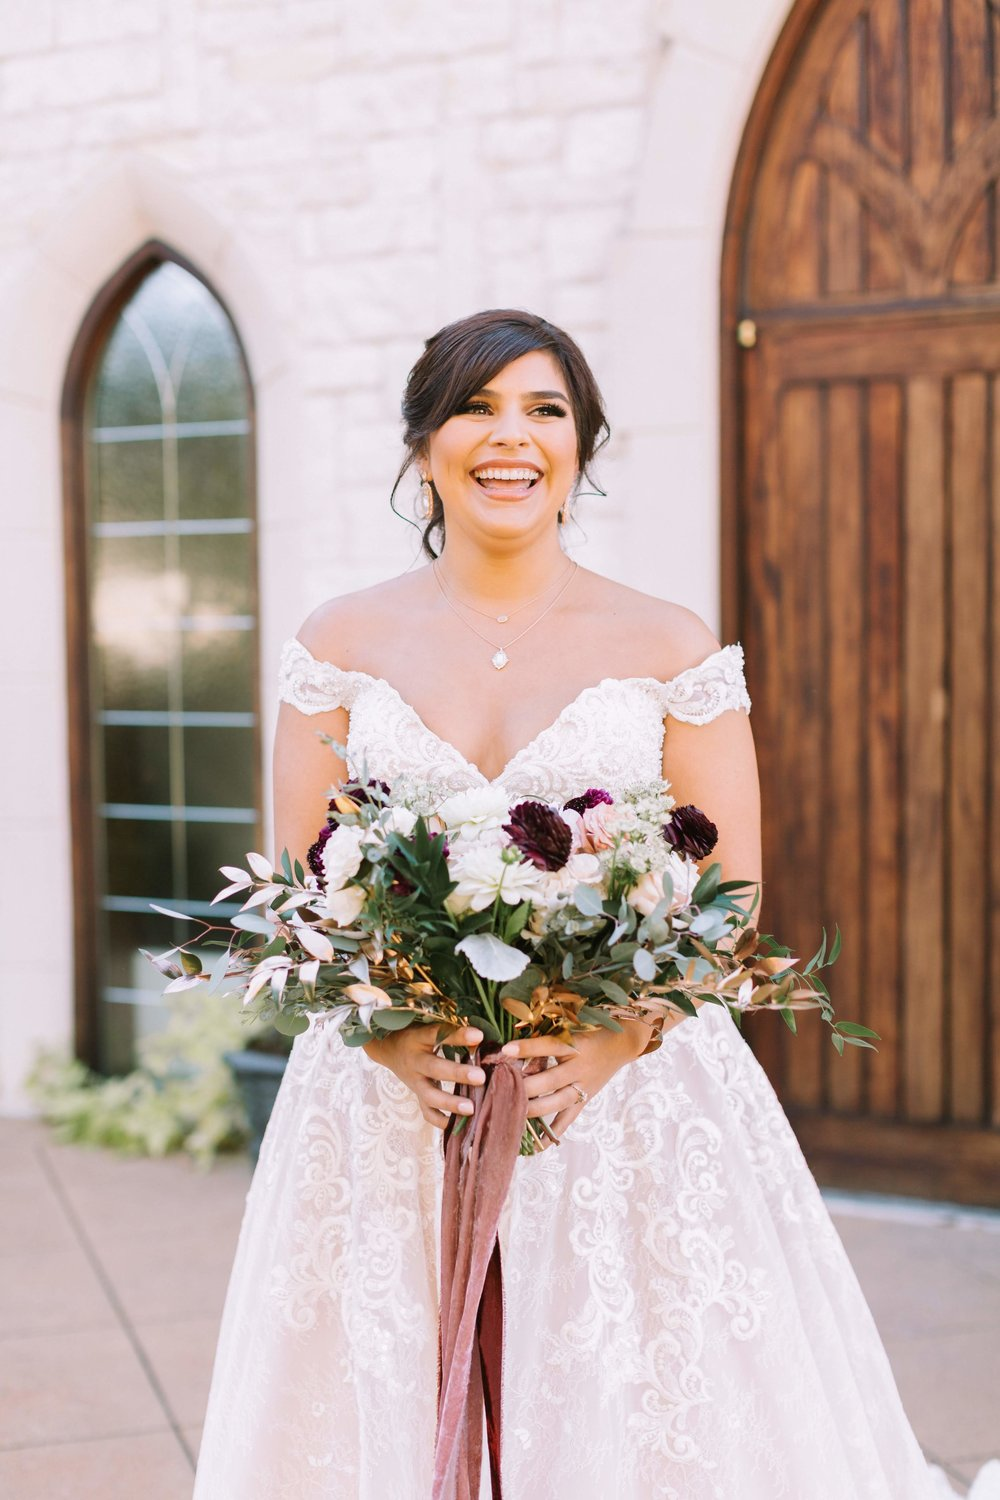 PARTIAL SERVICE PLANNING - Perfect for the hands-on bride who needs someone to assist in pulling the vision together, advise along the way, and take the stress of wedding planning away. Feel empowered to take the lead with KWWE guidance, support, and assistance every step of the way.